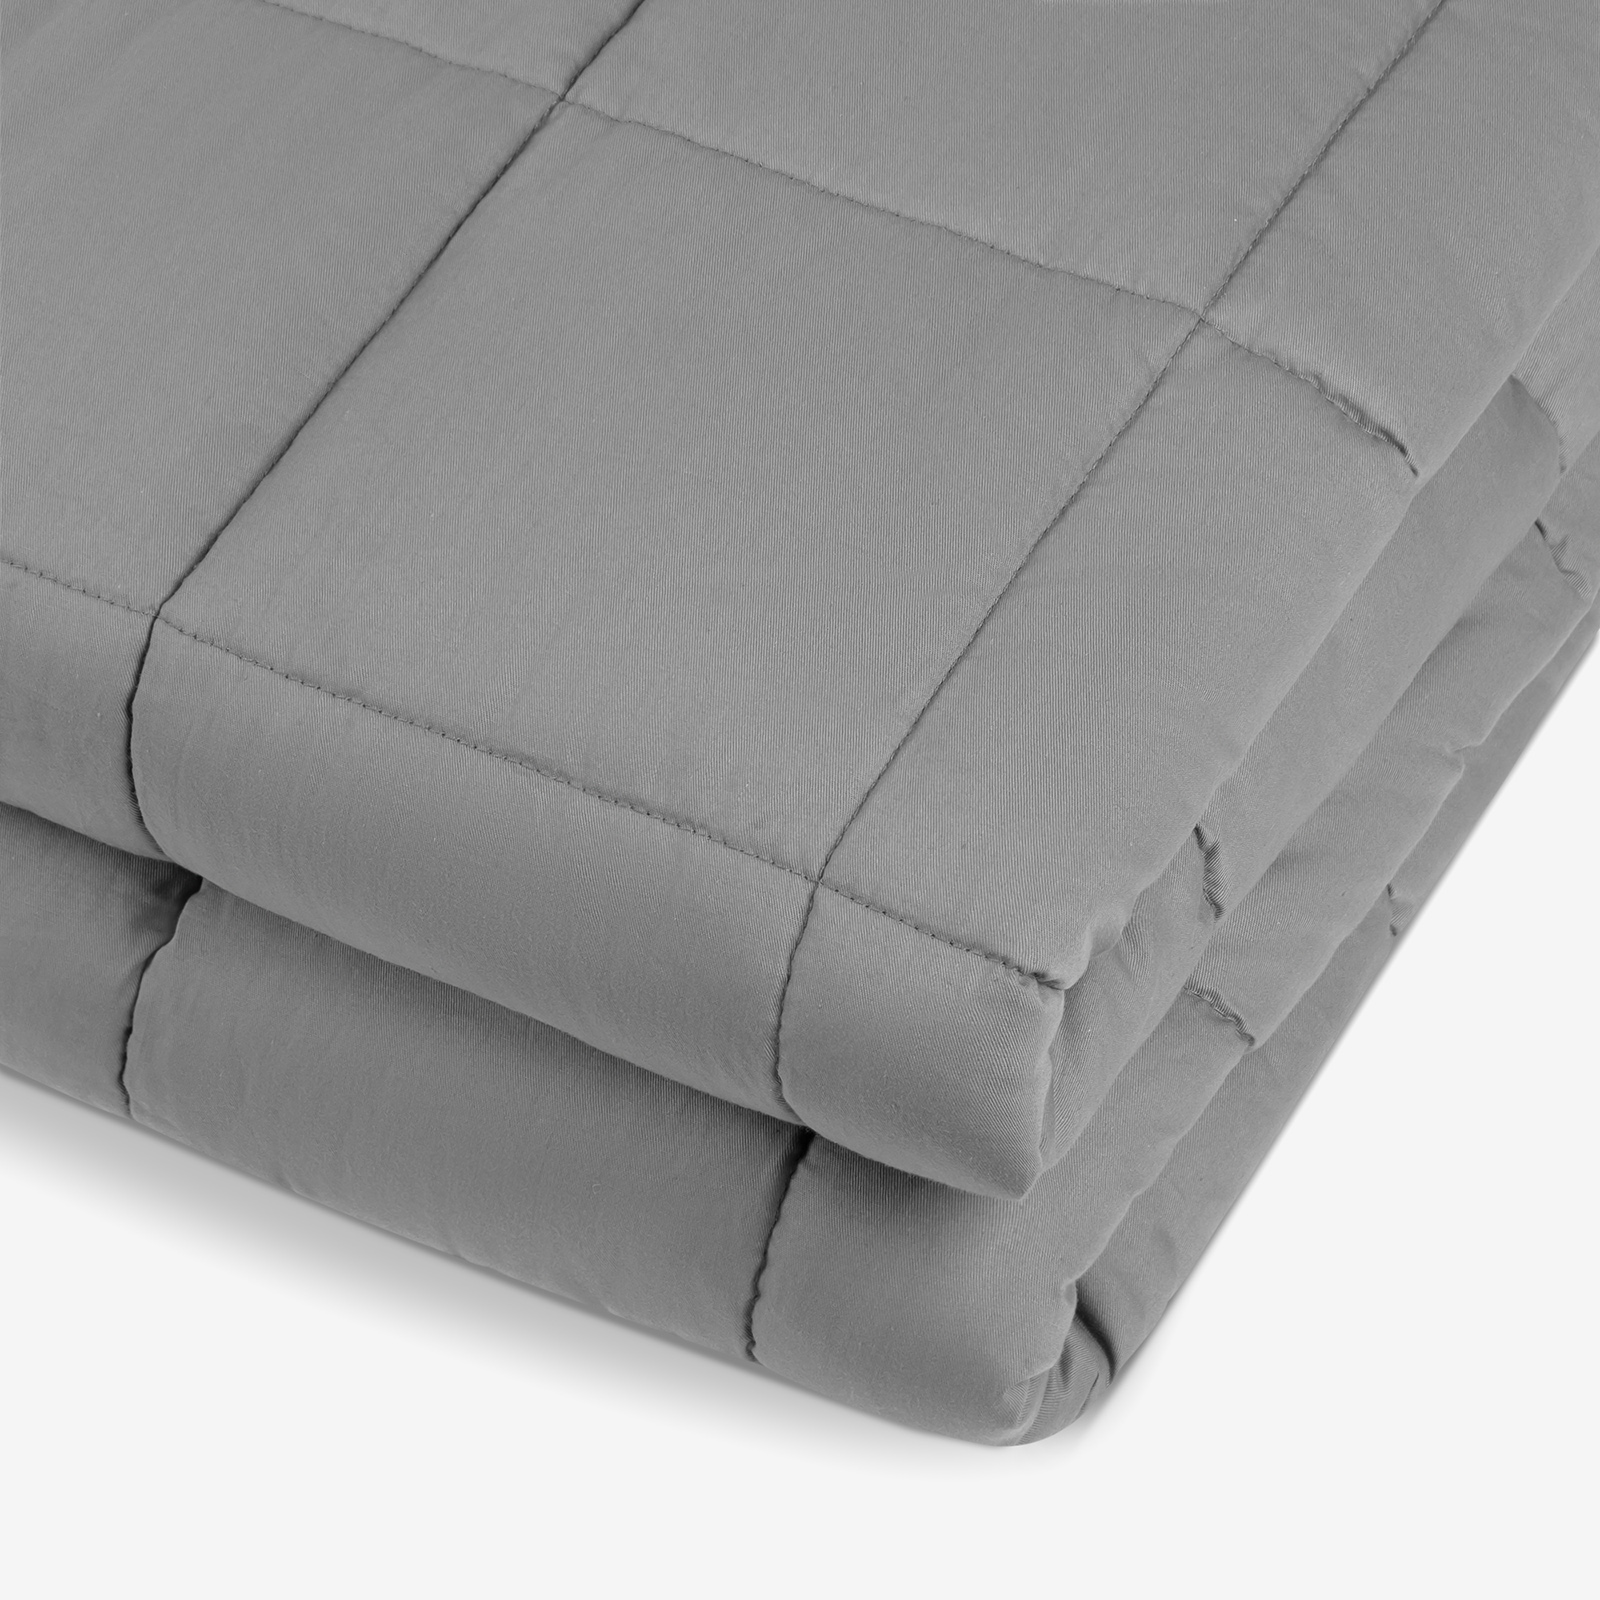 Folded blanket product picture